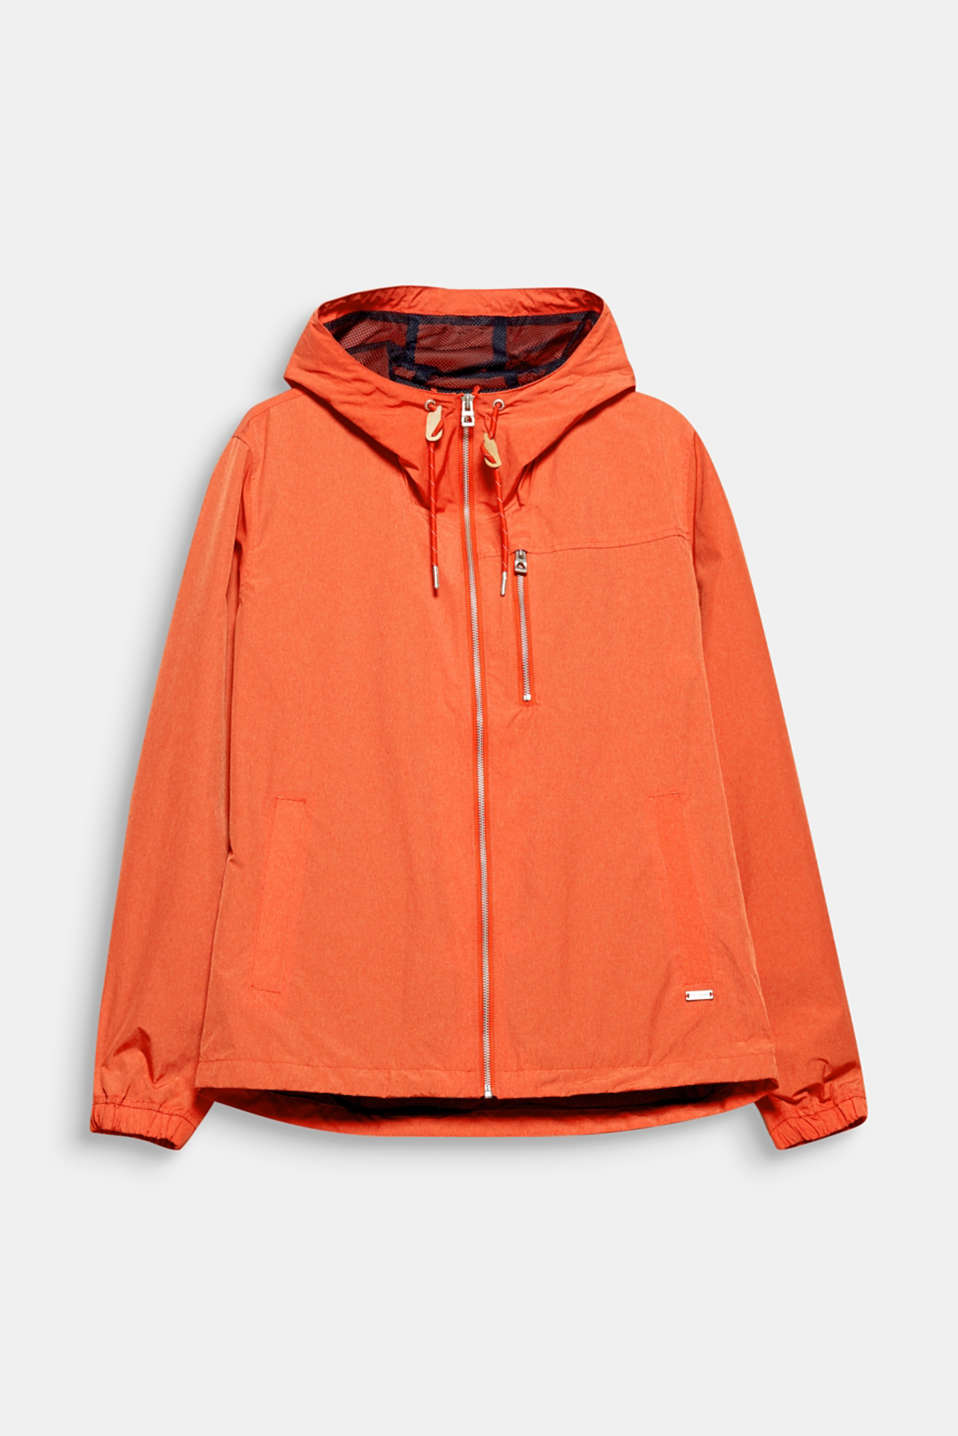 Beat dreary weather with bold, trendy colour: lightweight hooded outdoor jacket.